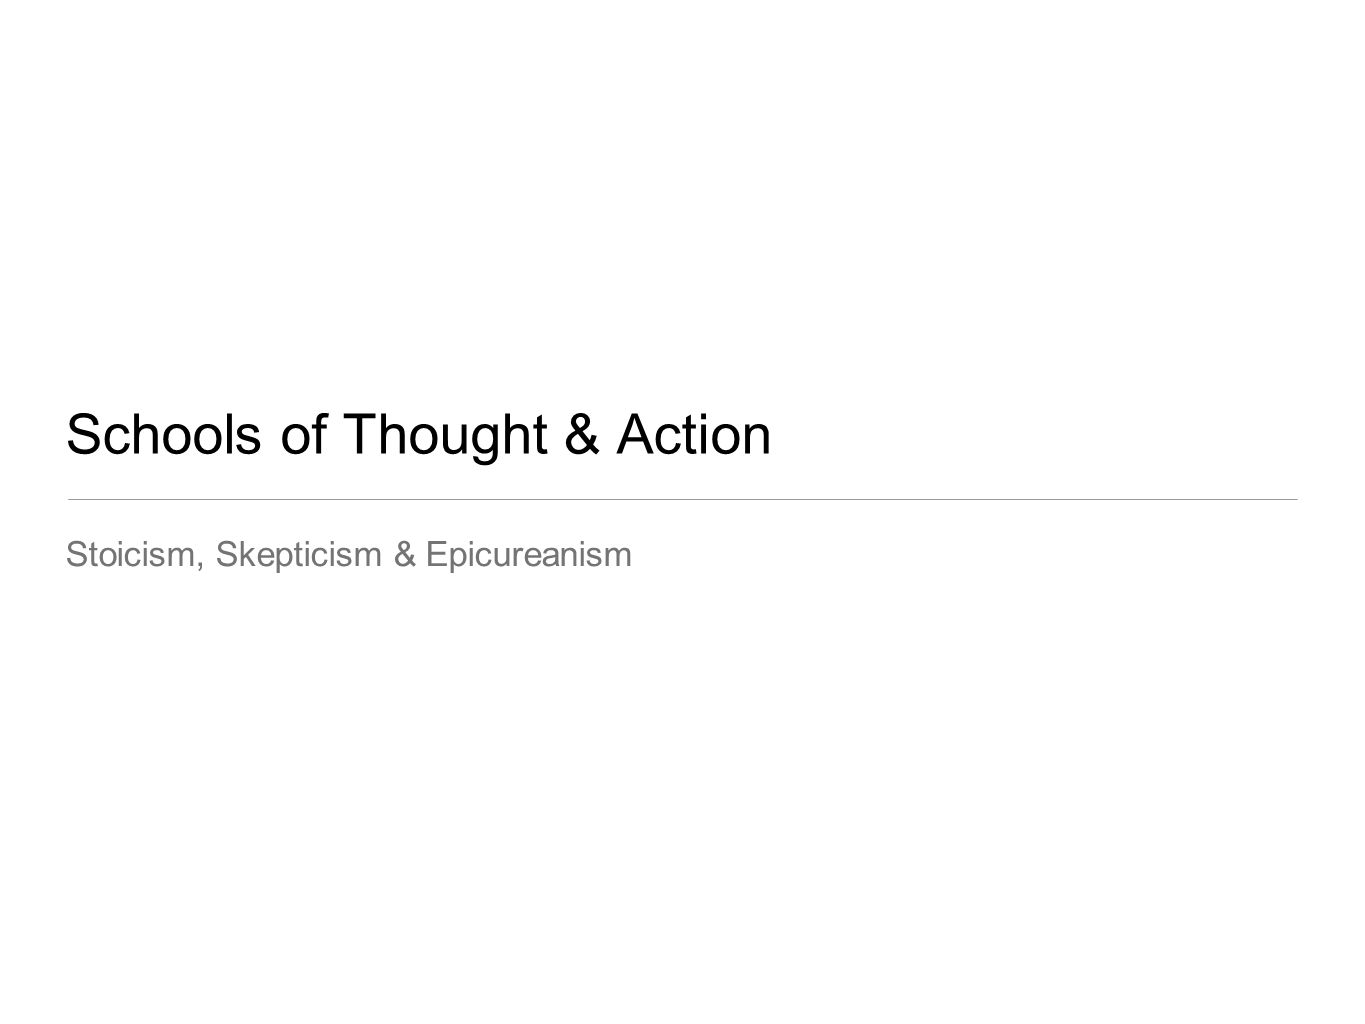 Schools of Thought & Action Stoicism, Skepticism & Epicureanism